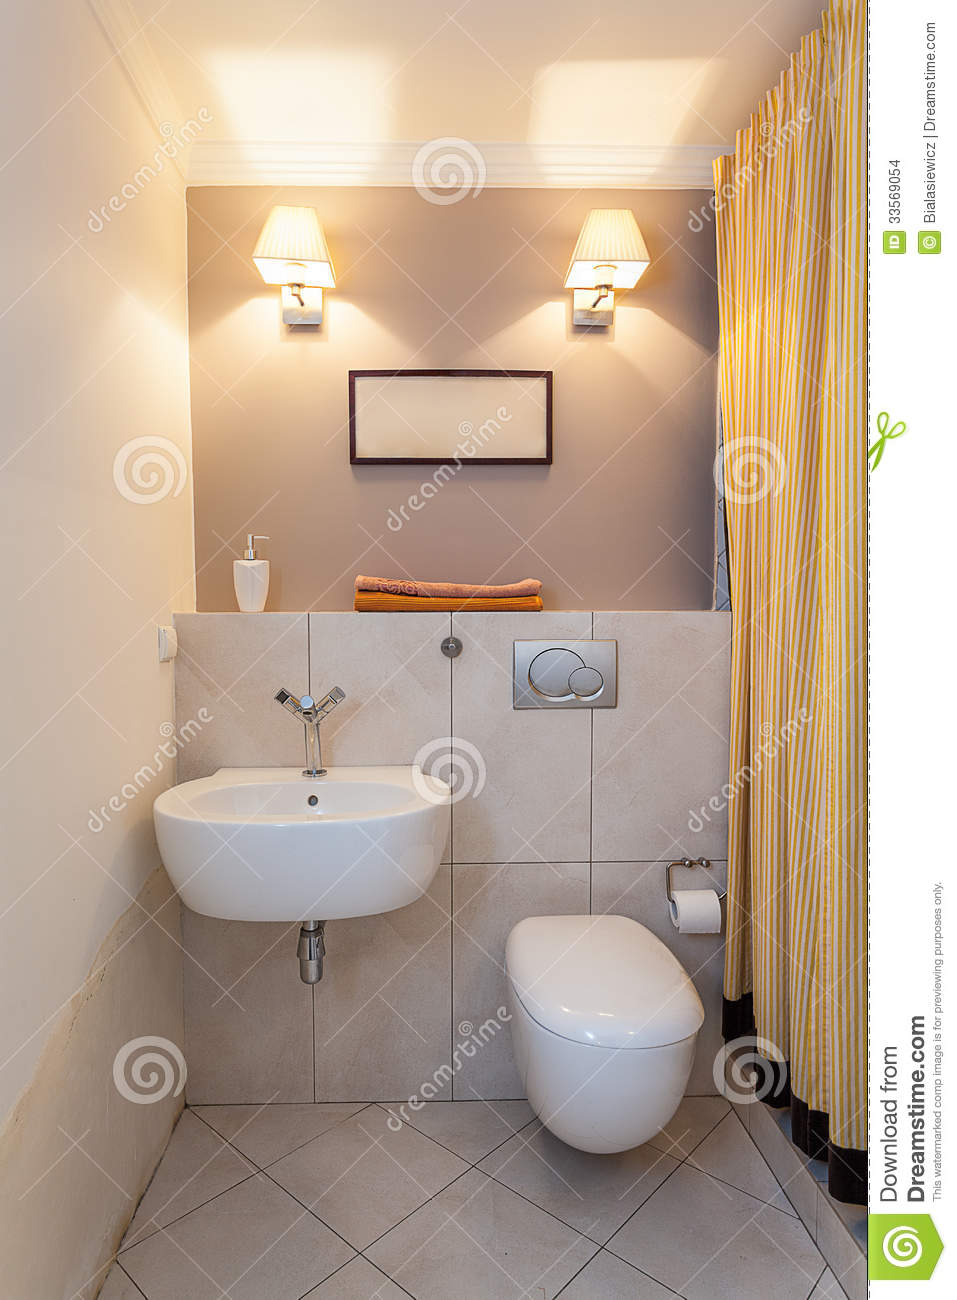 Toronto Harlowe Condos together with Aba3f6a77c205a1b additionally Lancasterimus wordpress in addition Our Experience further High Backyard Decks. on bedroom closet plans